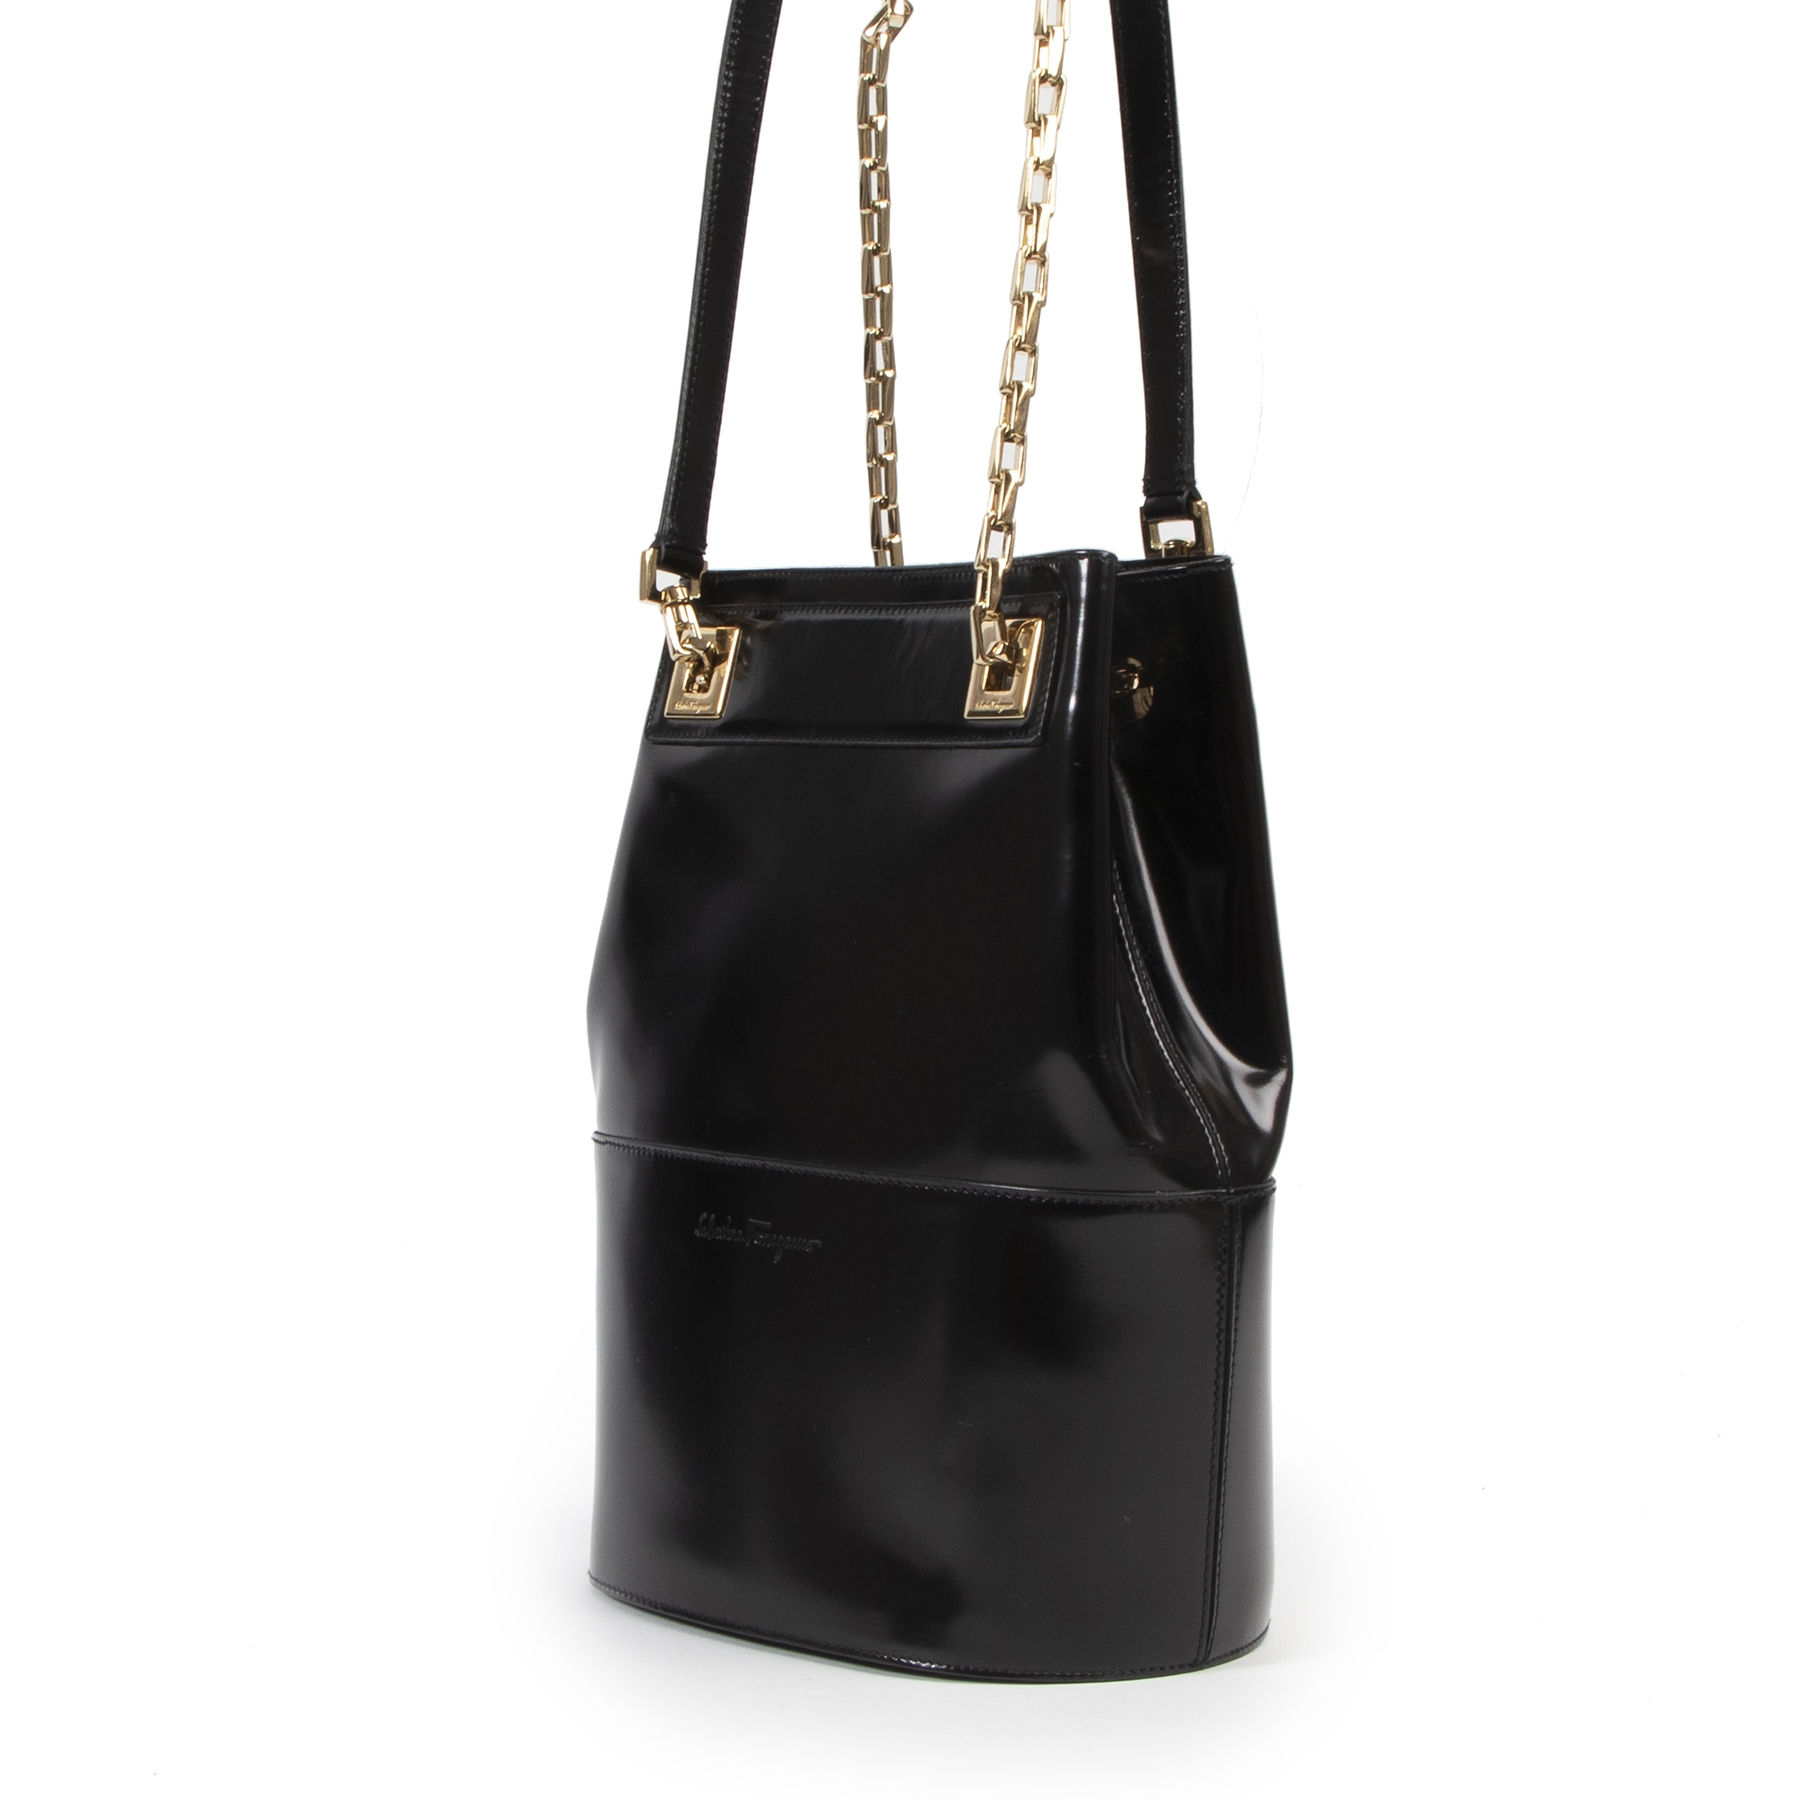 We are looking for an authentic designer Salvatore Ferragamo Black Chain Shoulder Bag